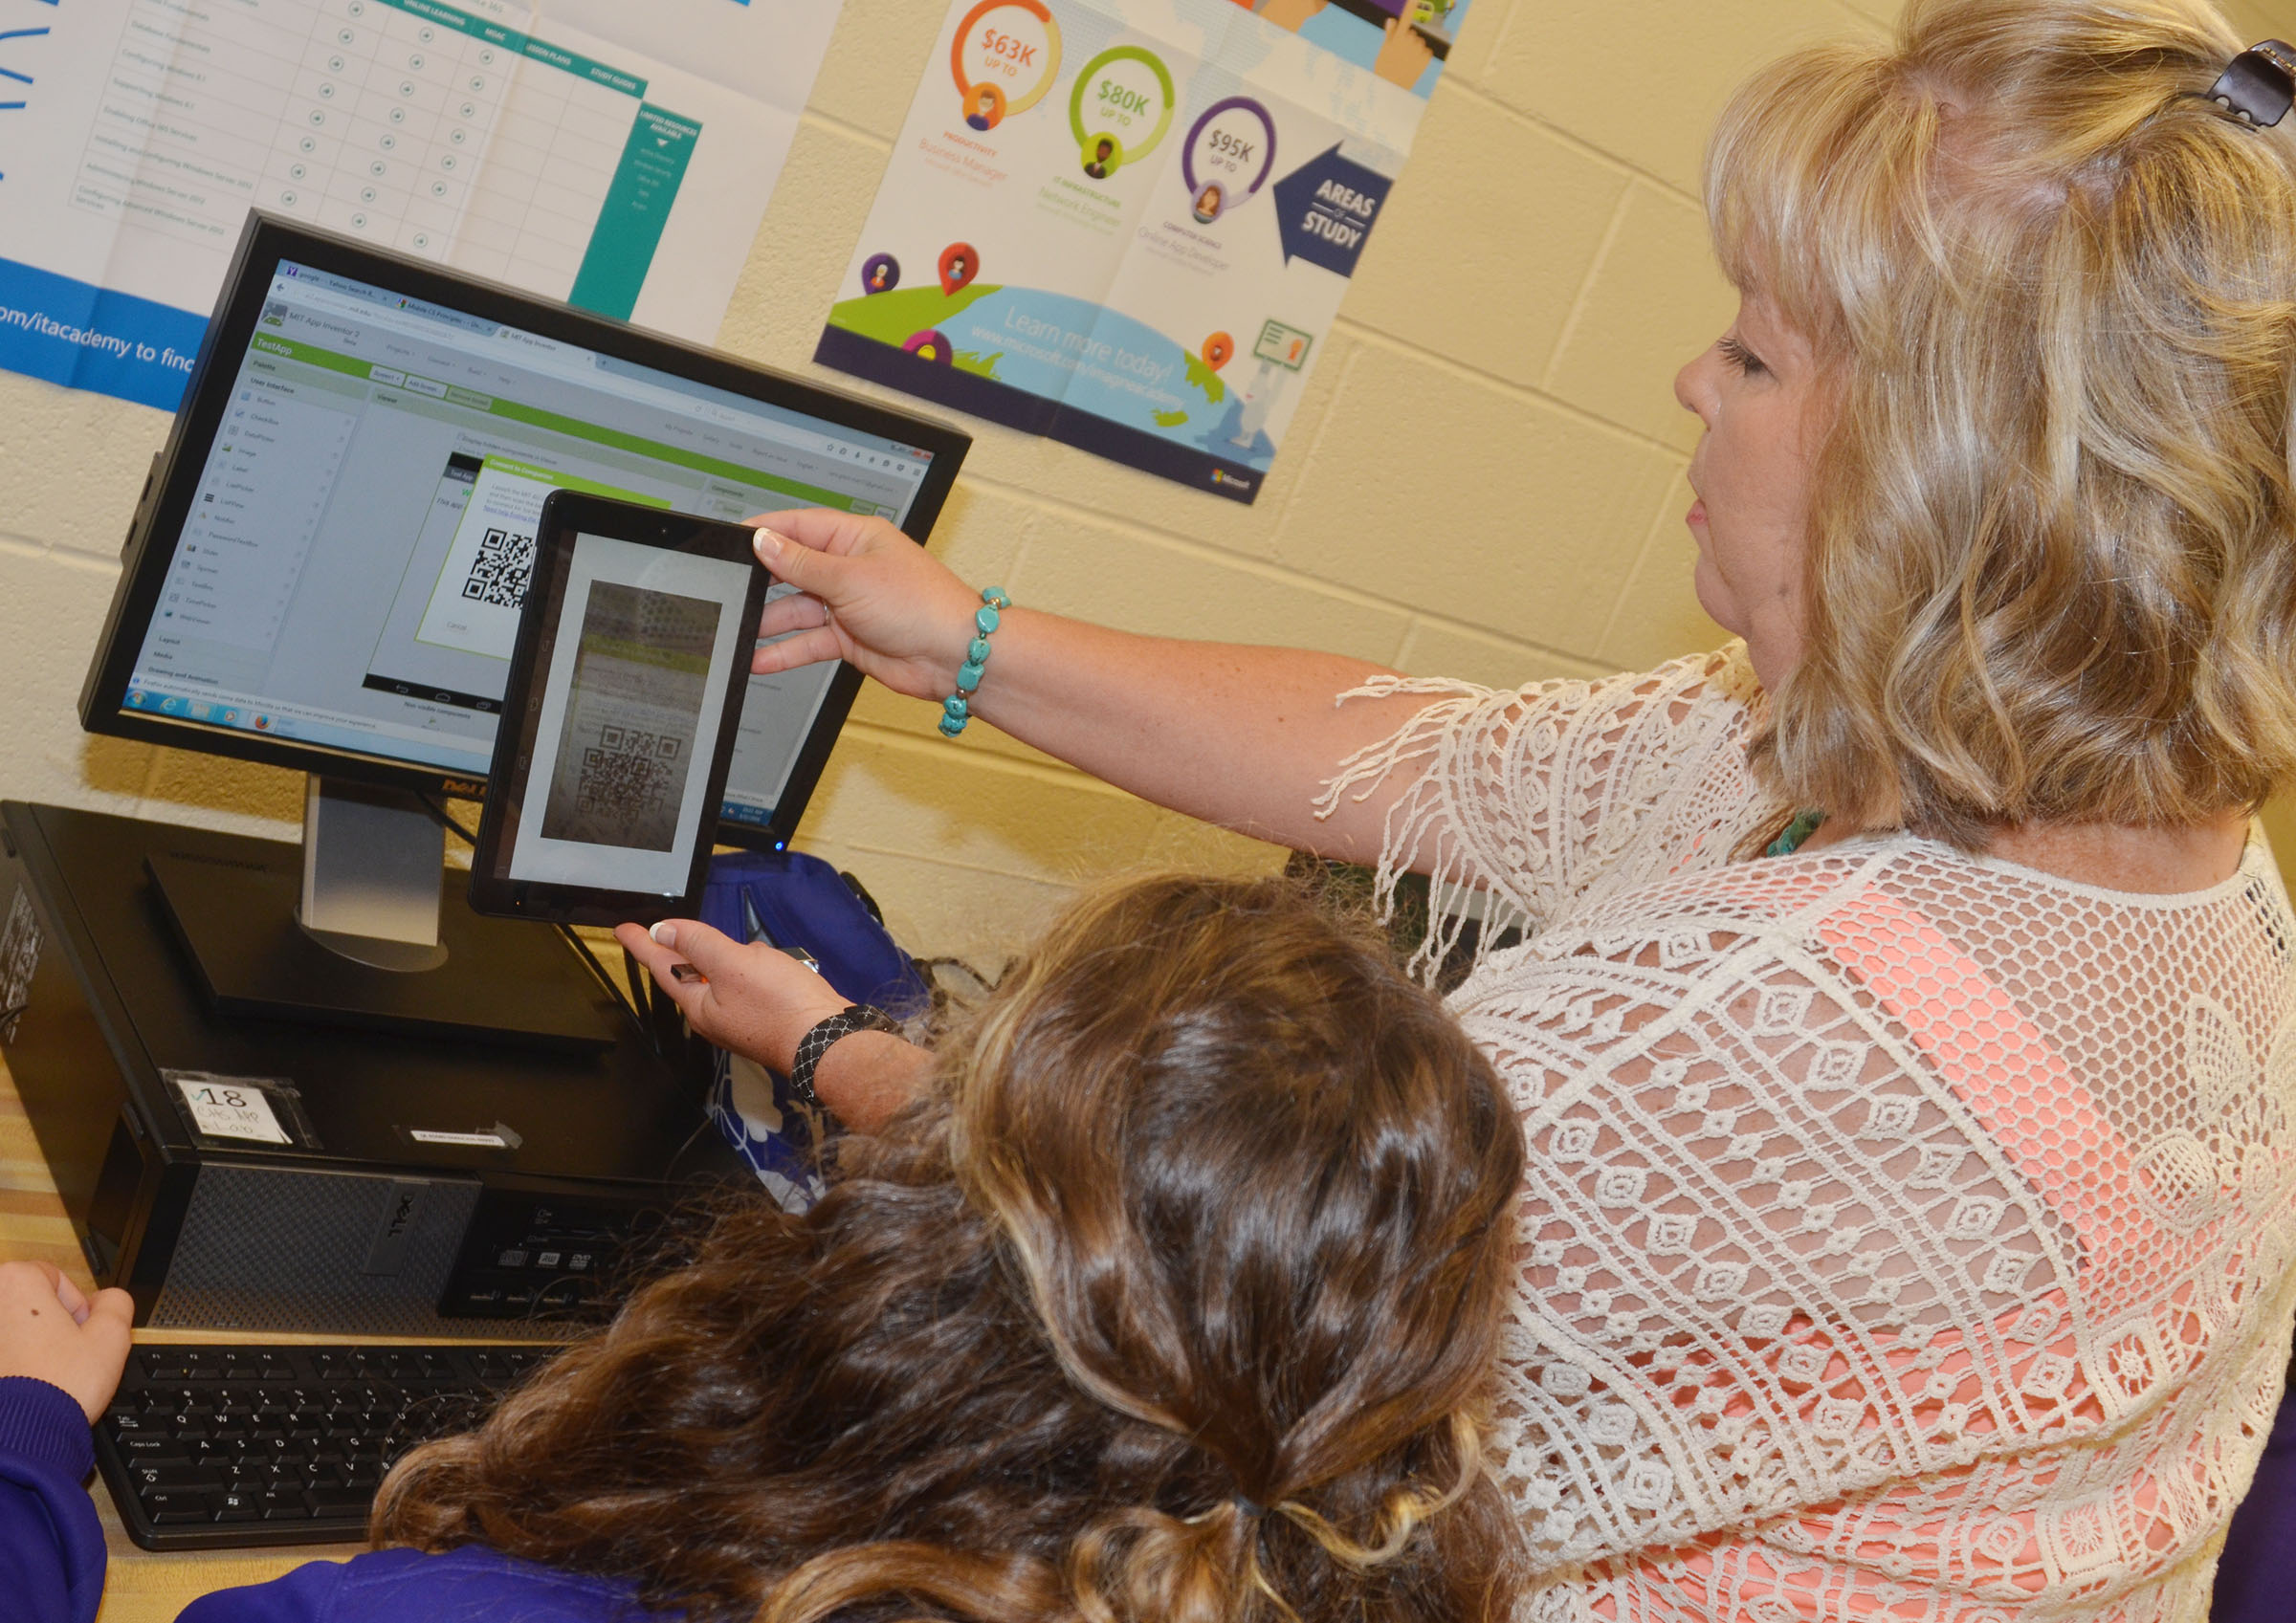 Sonya Kessler helps a student in her CHS computer science principles class, which was a new class nationwide in the 2016-2017 school year.